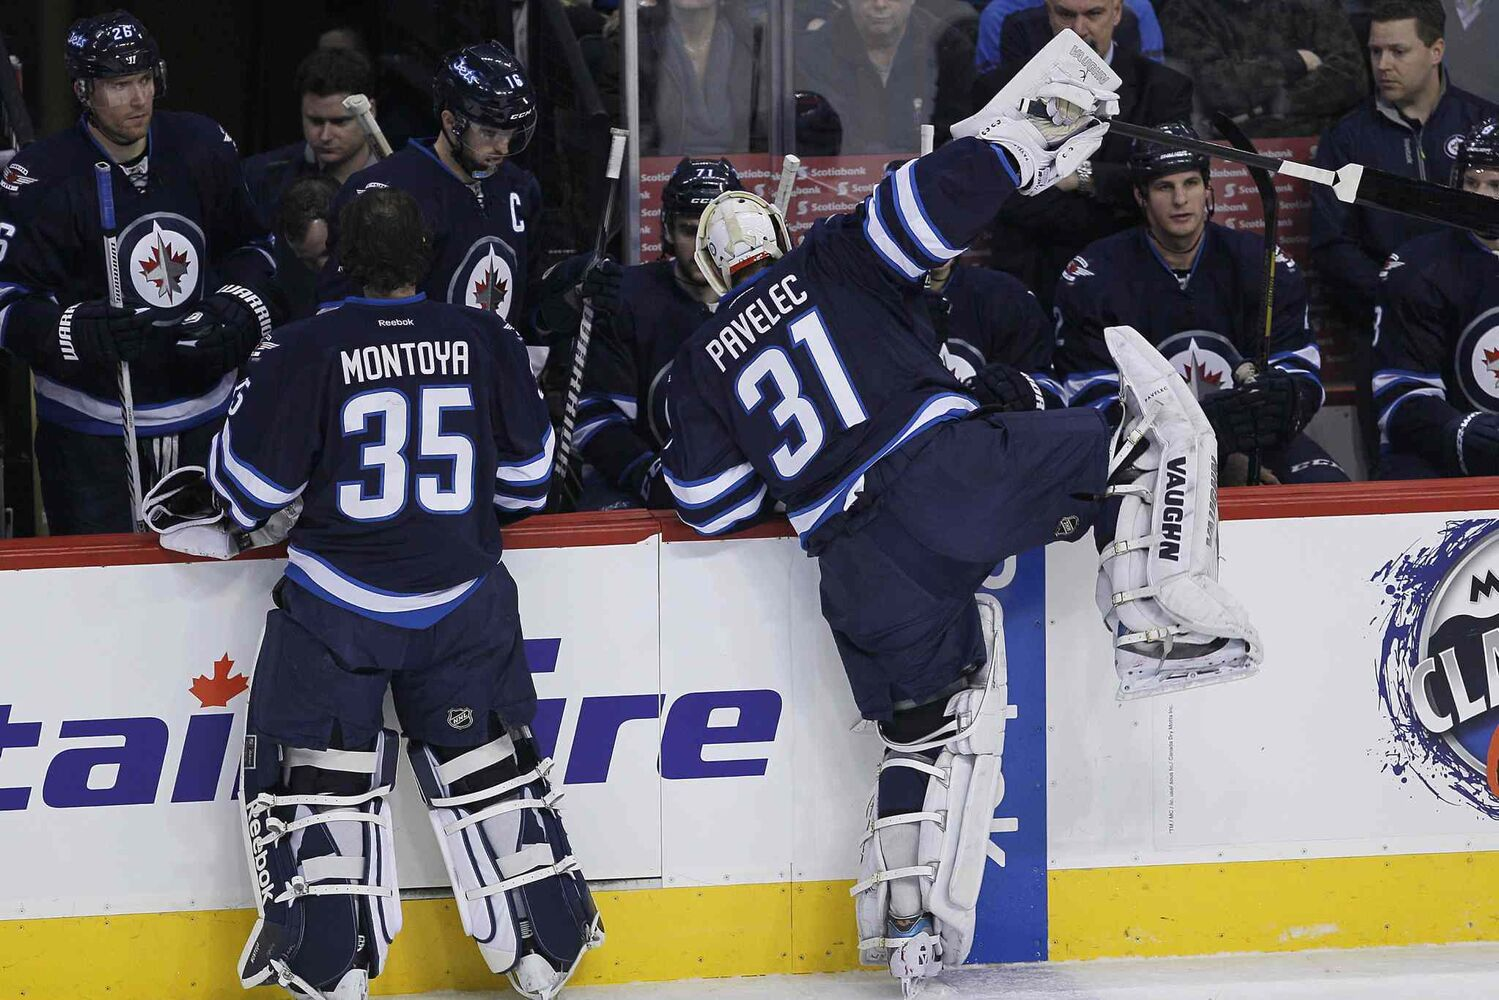 Winnipeg Jets goaltender Ondrej Pavelec (right) climbs over the boards in frustration after being pulled during the first period. Al Montoya (left) came in to replace Pavelec.